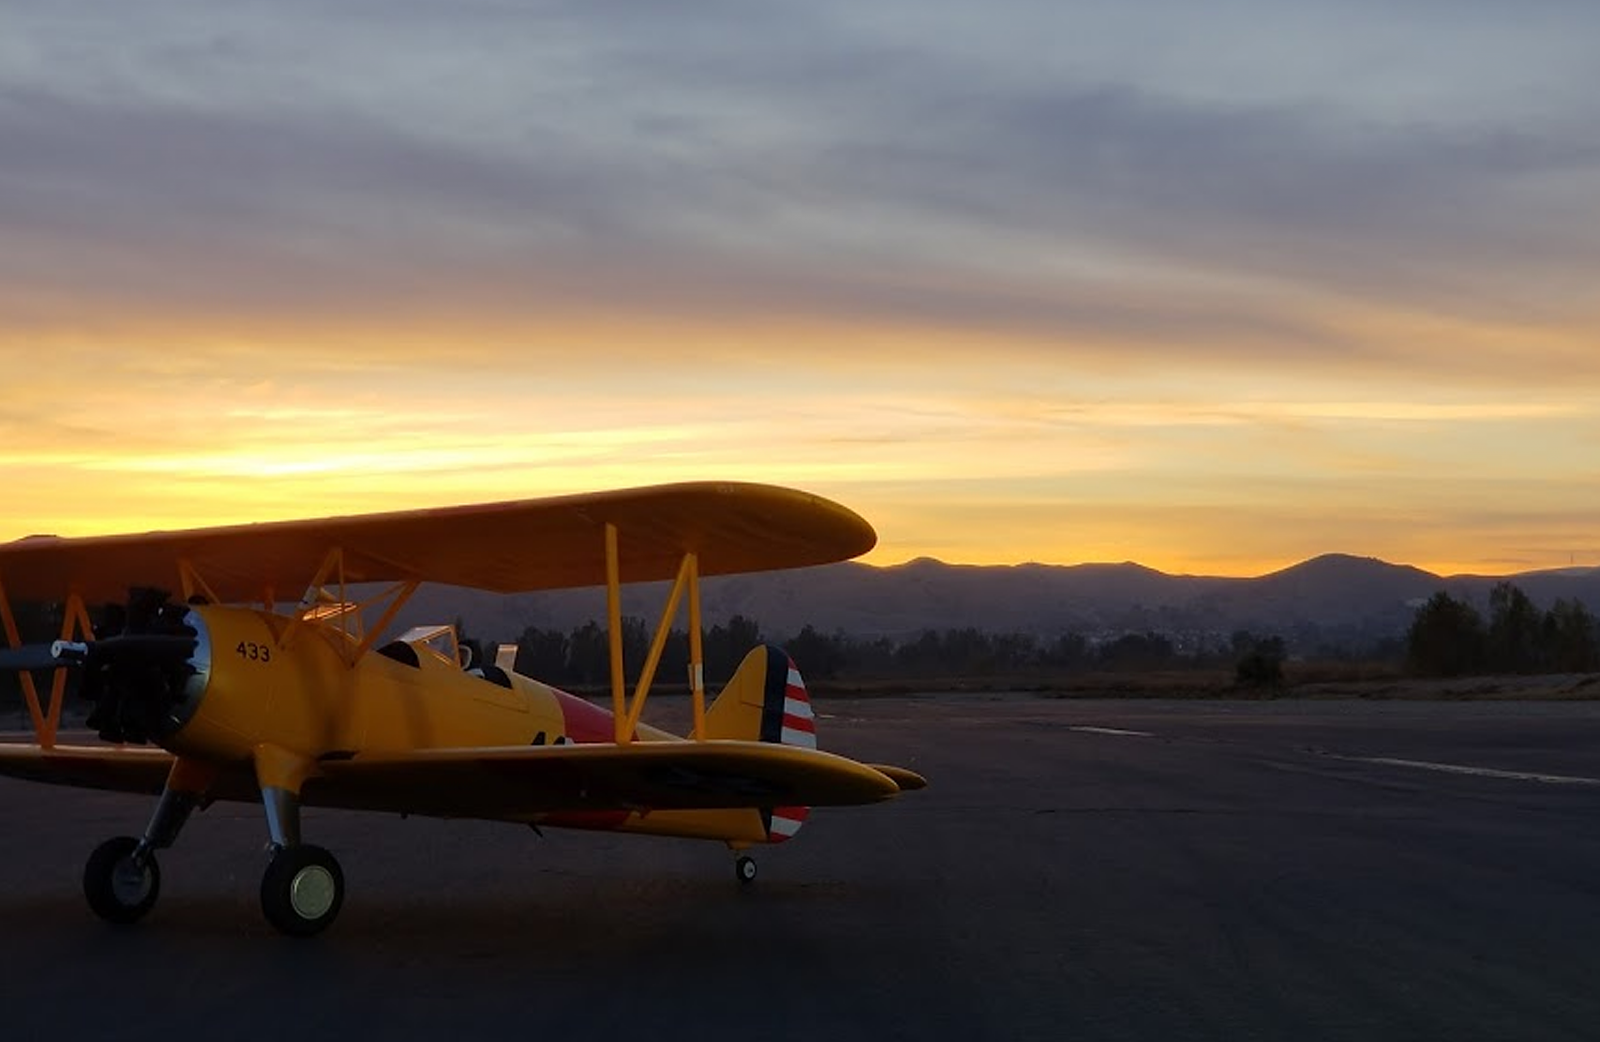 A closeup of a model airplane on the Prado park airfield at dusk.